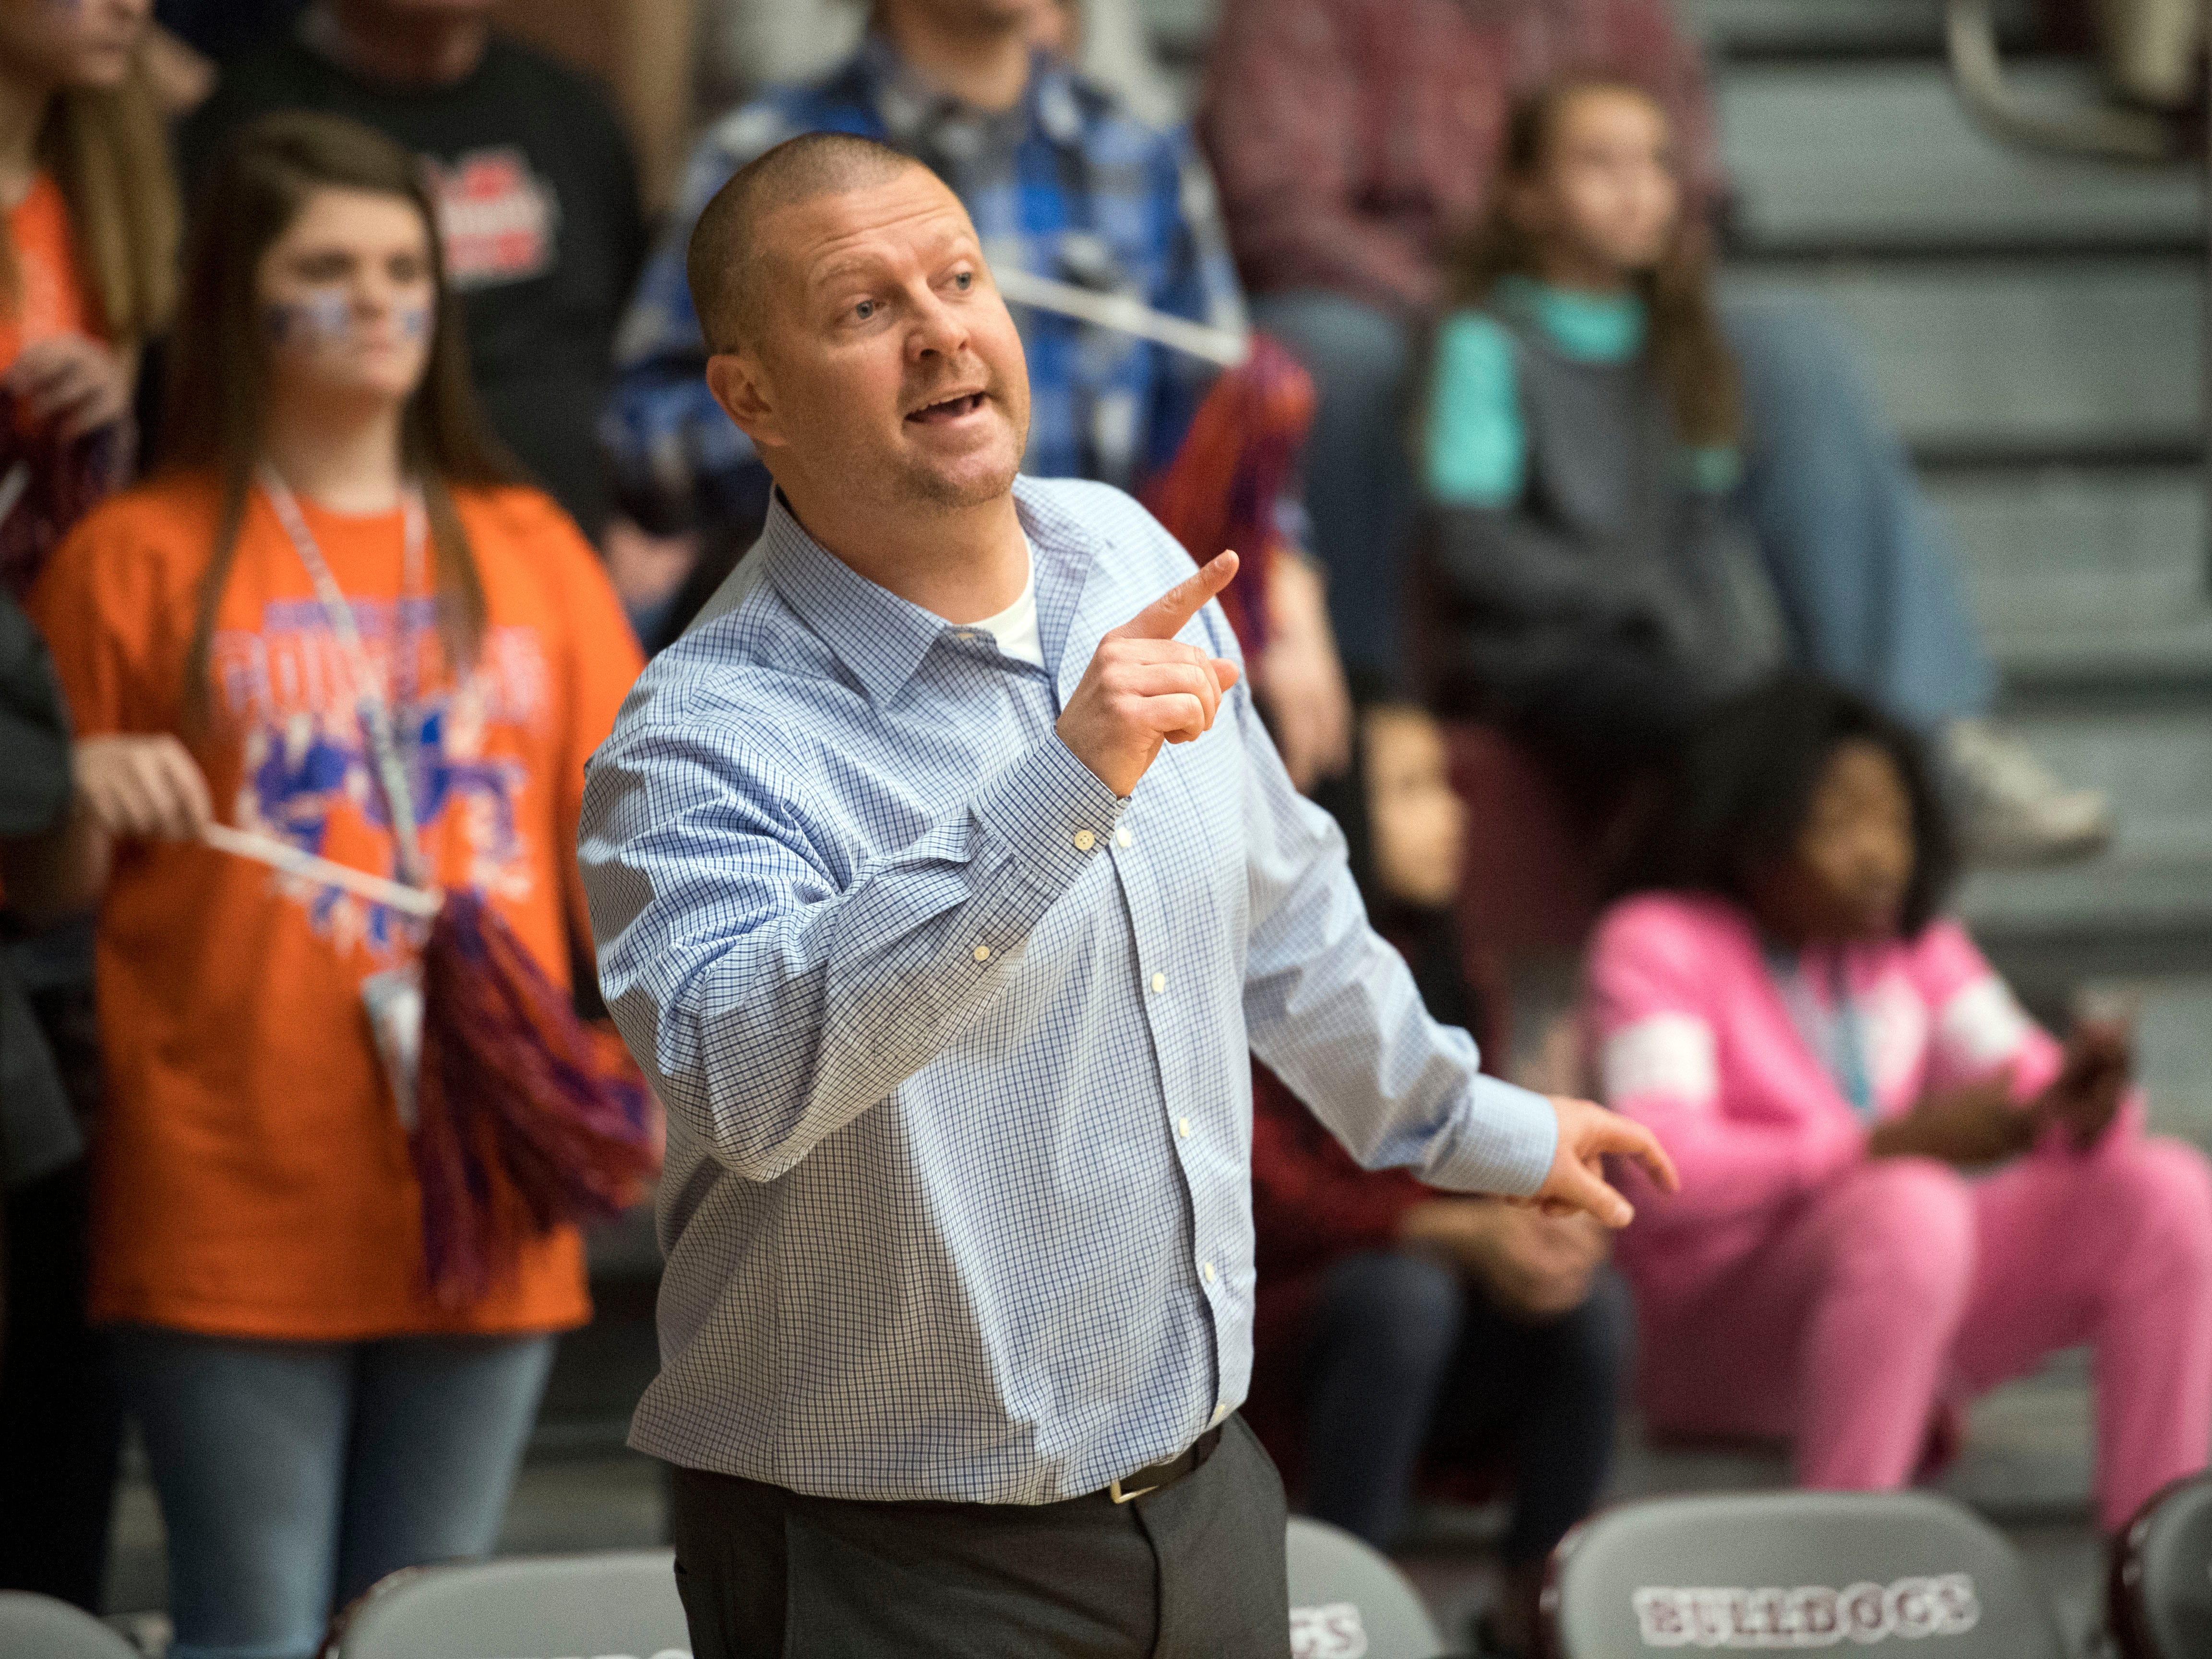 Campbell County basketball coach Brad Honeycutt yells out directions to the team the Region 2-AAA girls basketball semifinals against Bearden on Monday, February 26, 2018.